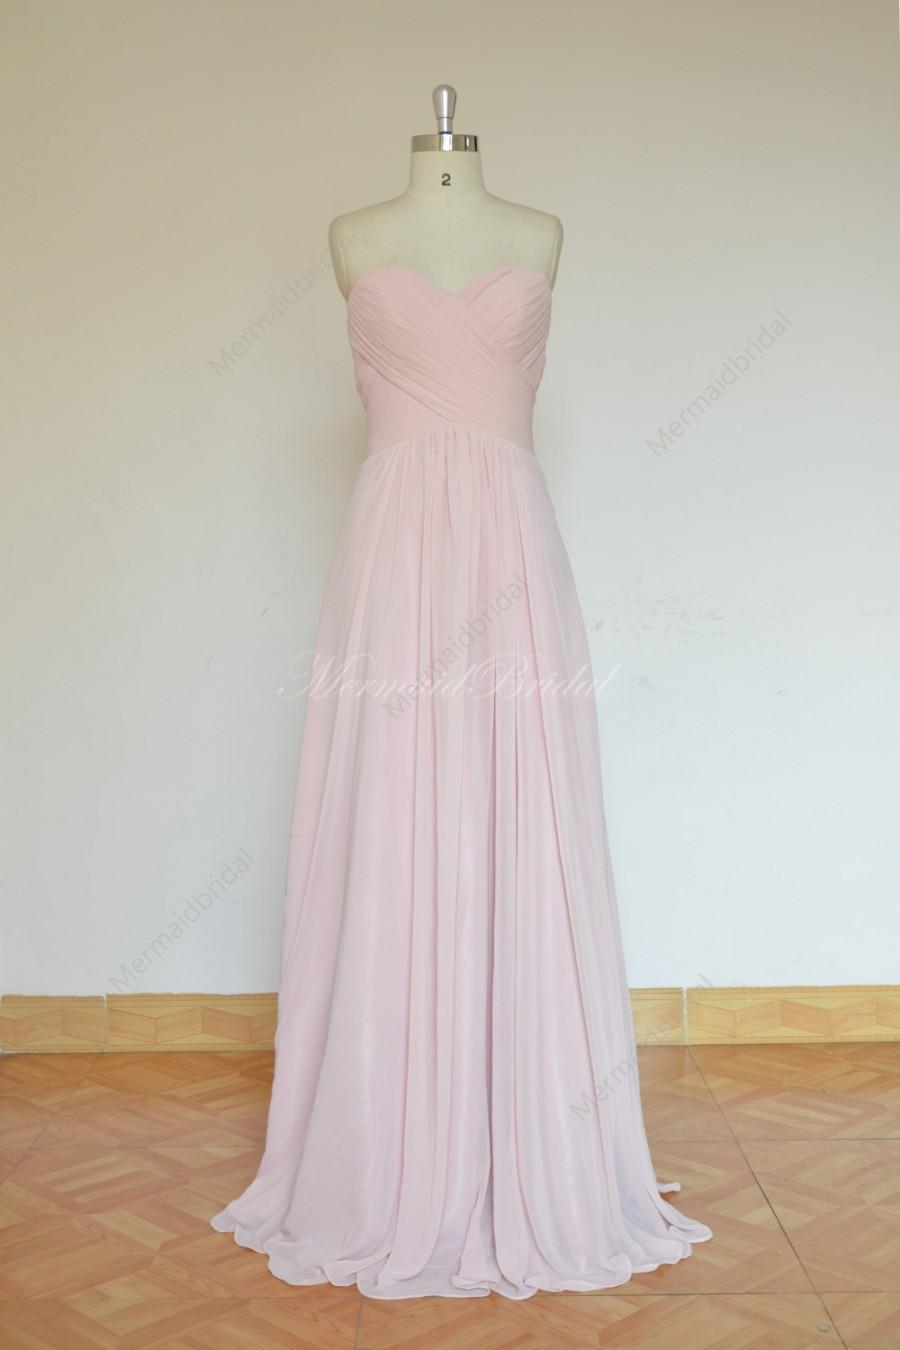 Wedding - Simple blush pink prom dress, bridesmaid dress with sweetheart neckline